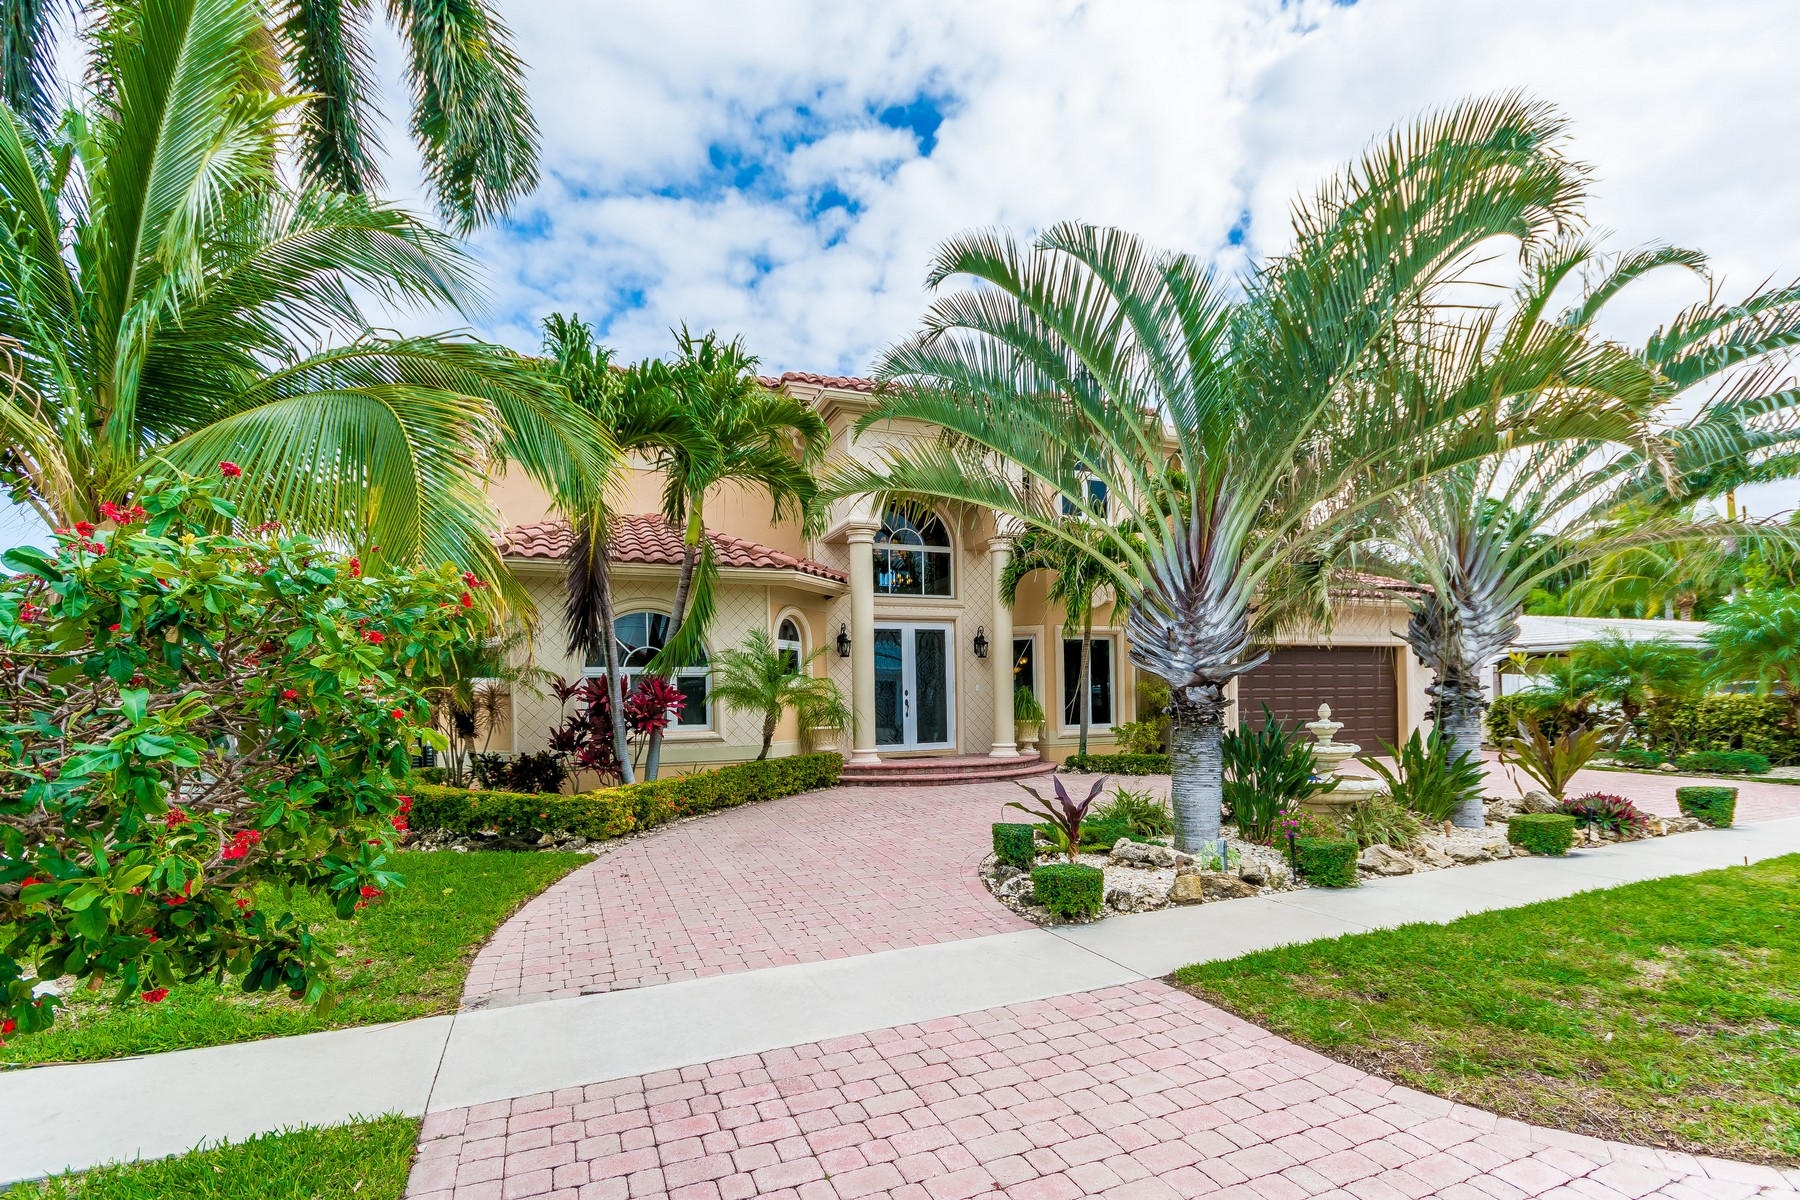 Casa Unifamiliar por un Venta en 4850 NE 29 Ave , Lighthouse Point, FL 33064 Lighthouse Point, Florida, 33064 Estados Unidos